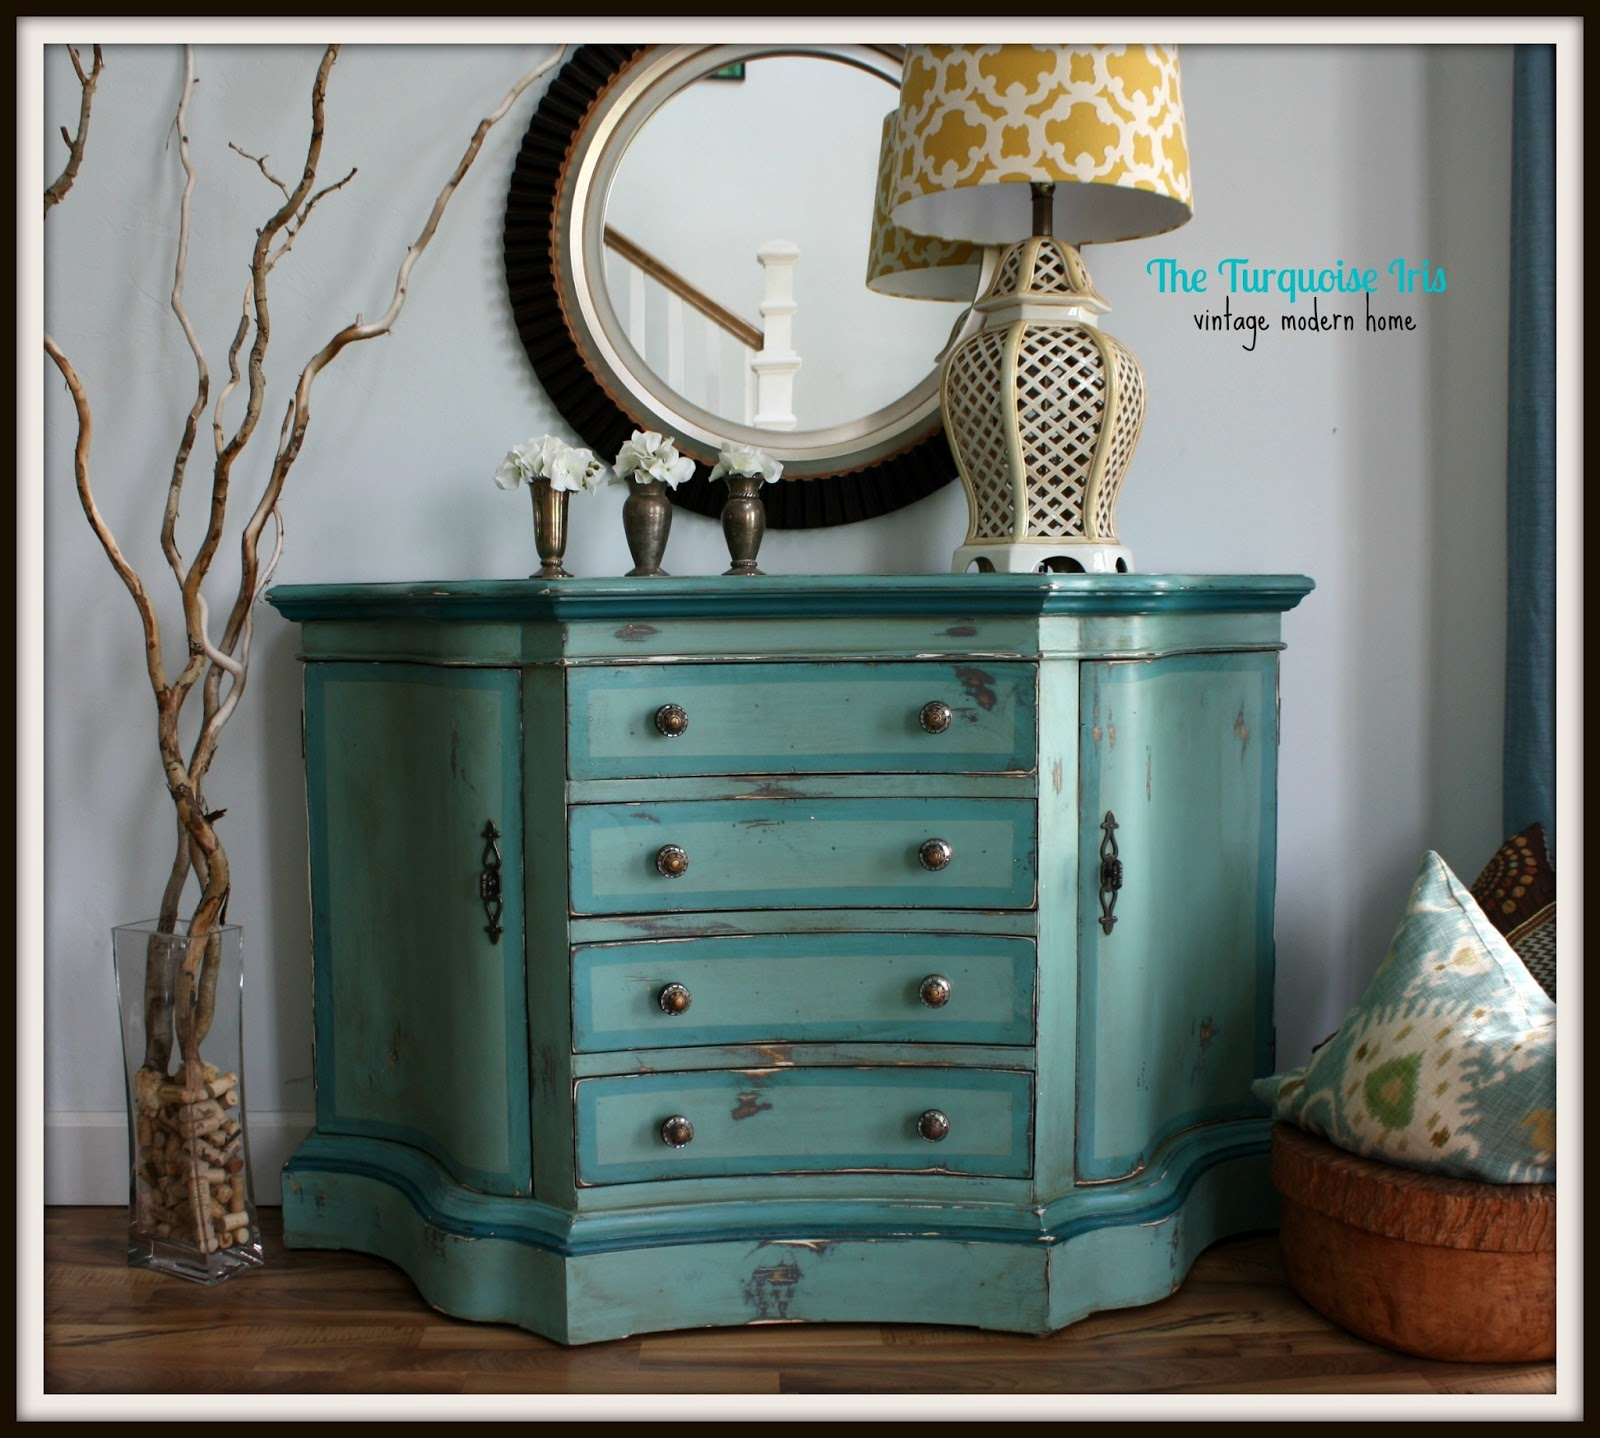 The Turquoise Iris Furniture & Art Teal Blue & Green